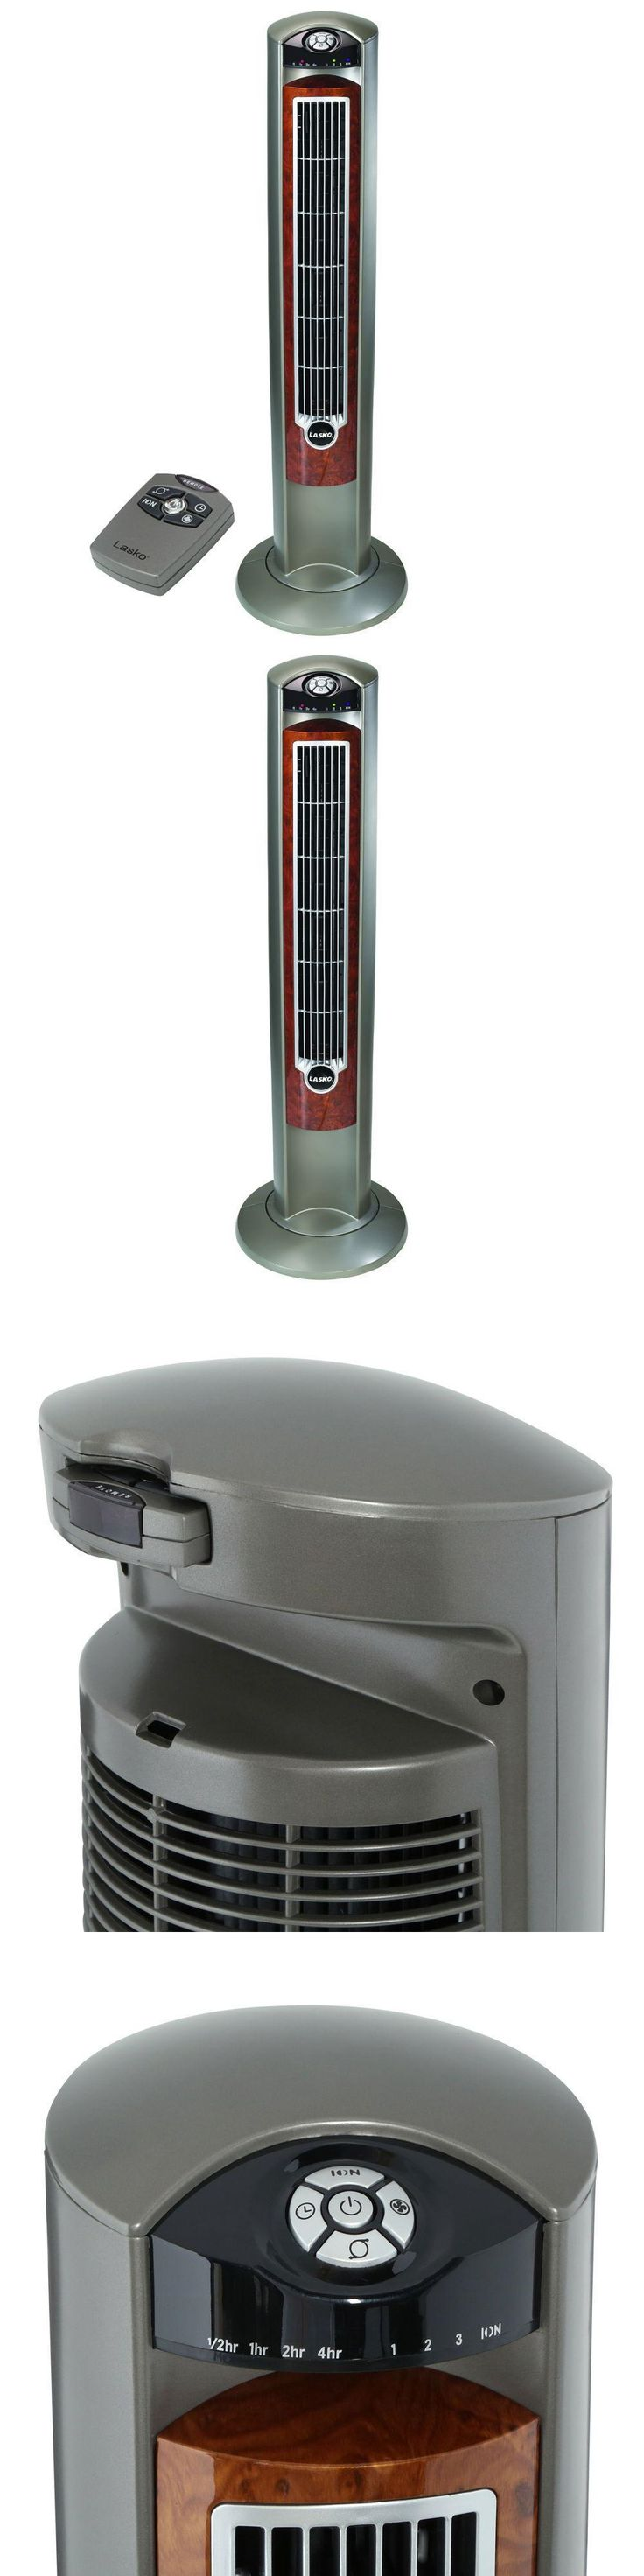 Air purifiers 43510 oscillating tower fan wind curve 42